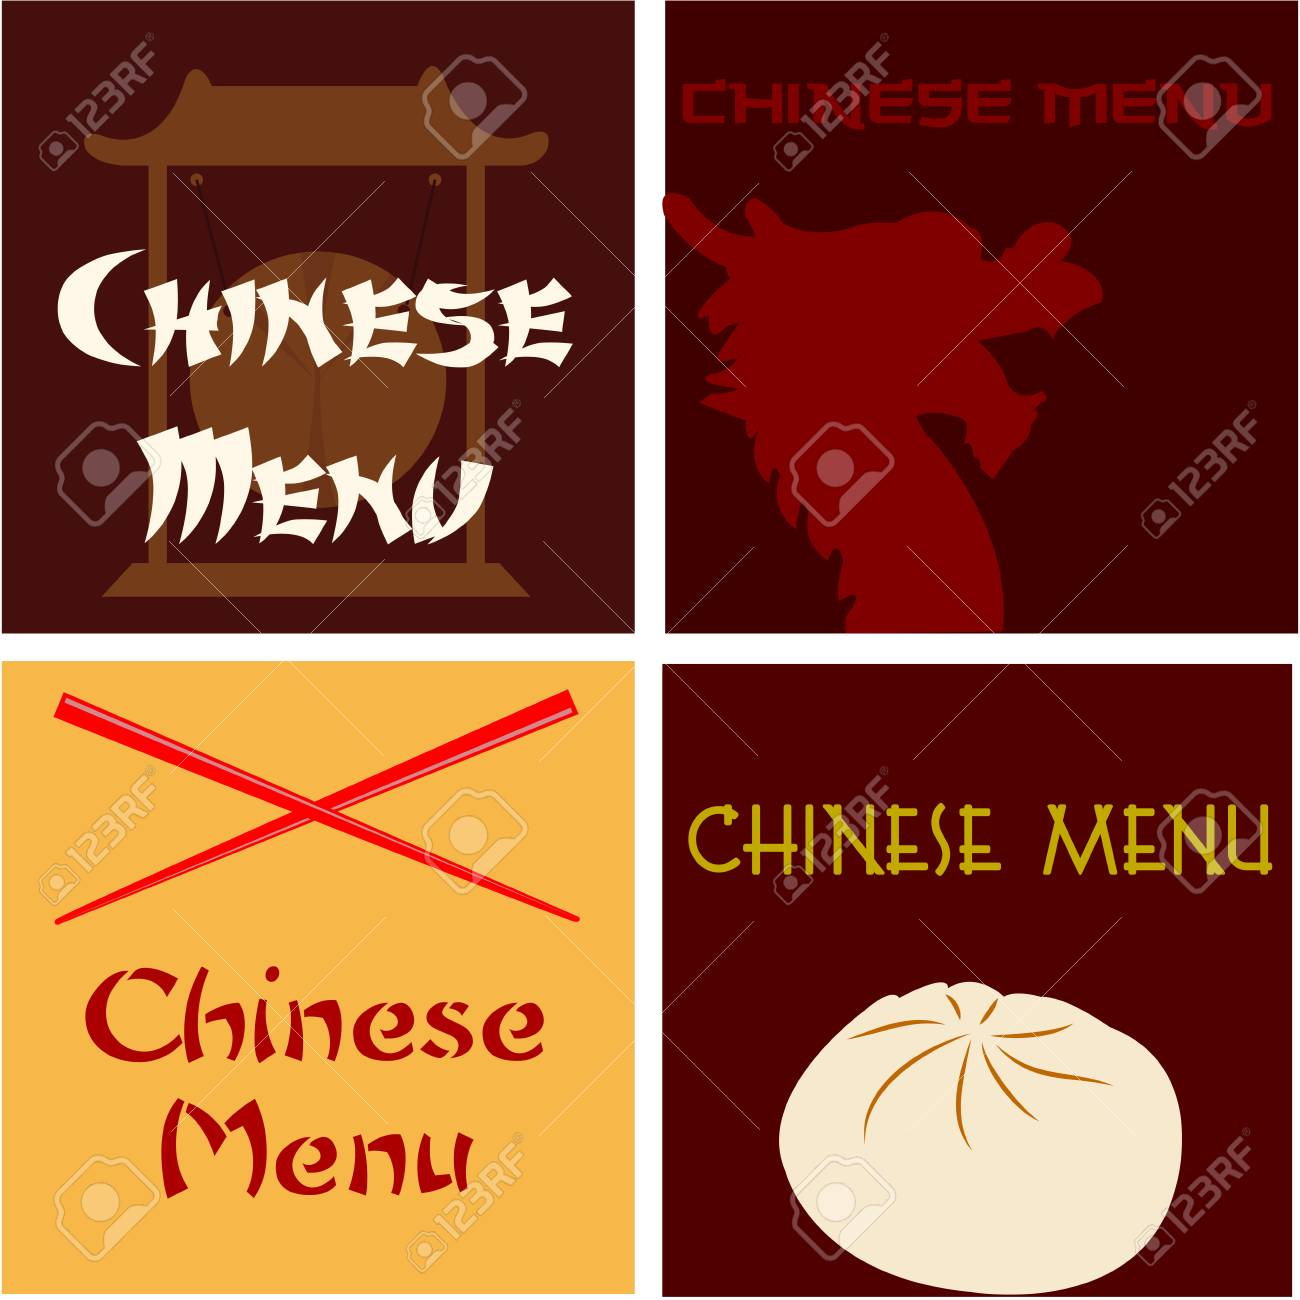 set of colored chinese menu designs with text vector illustration